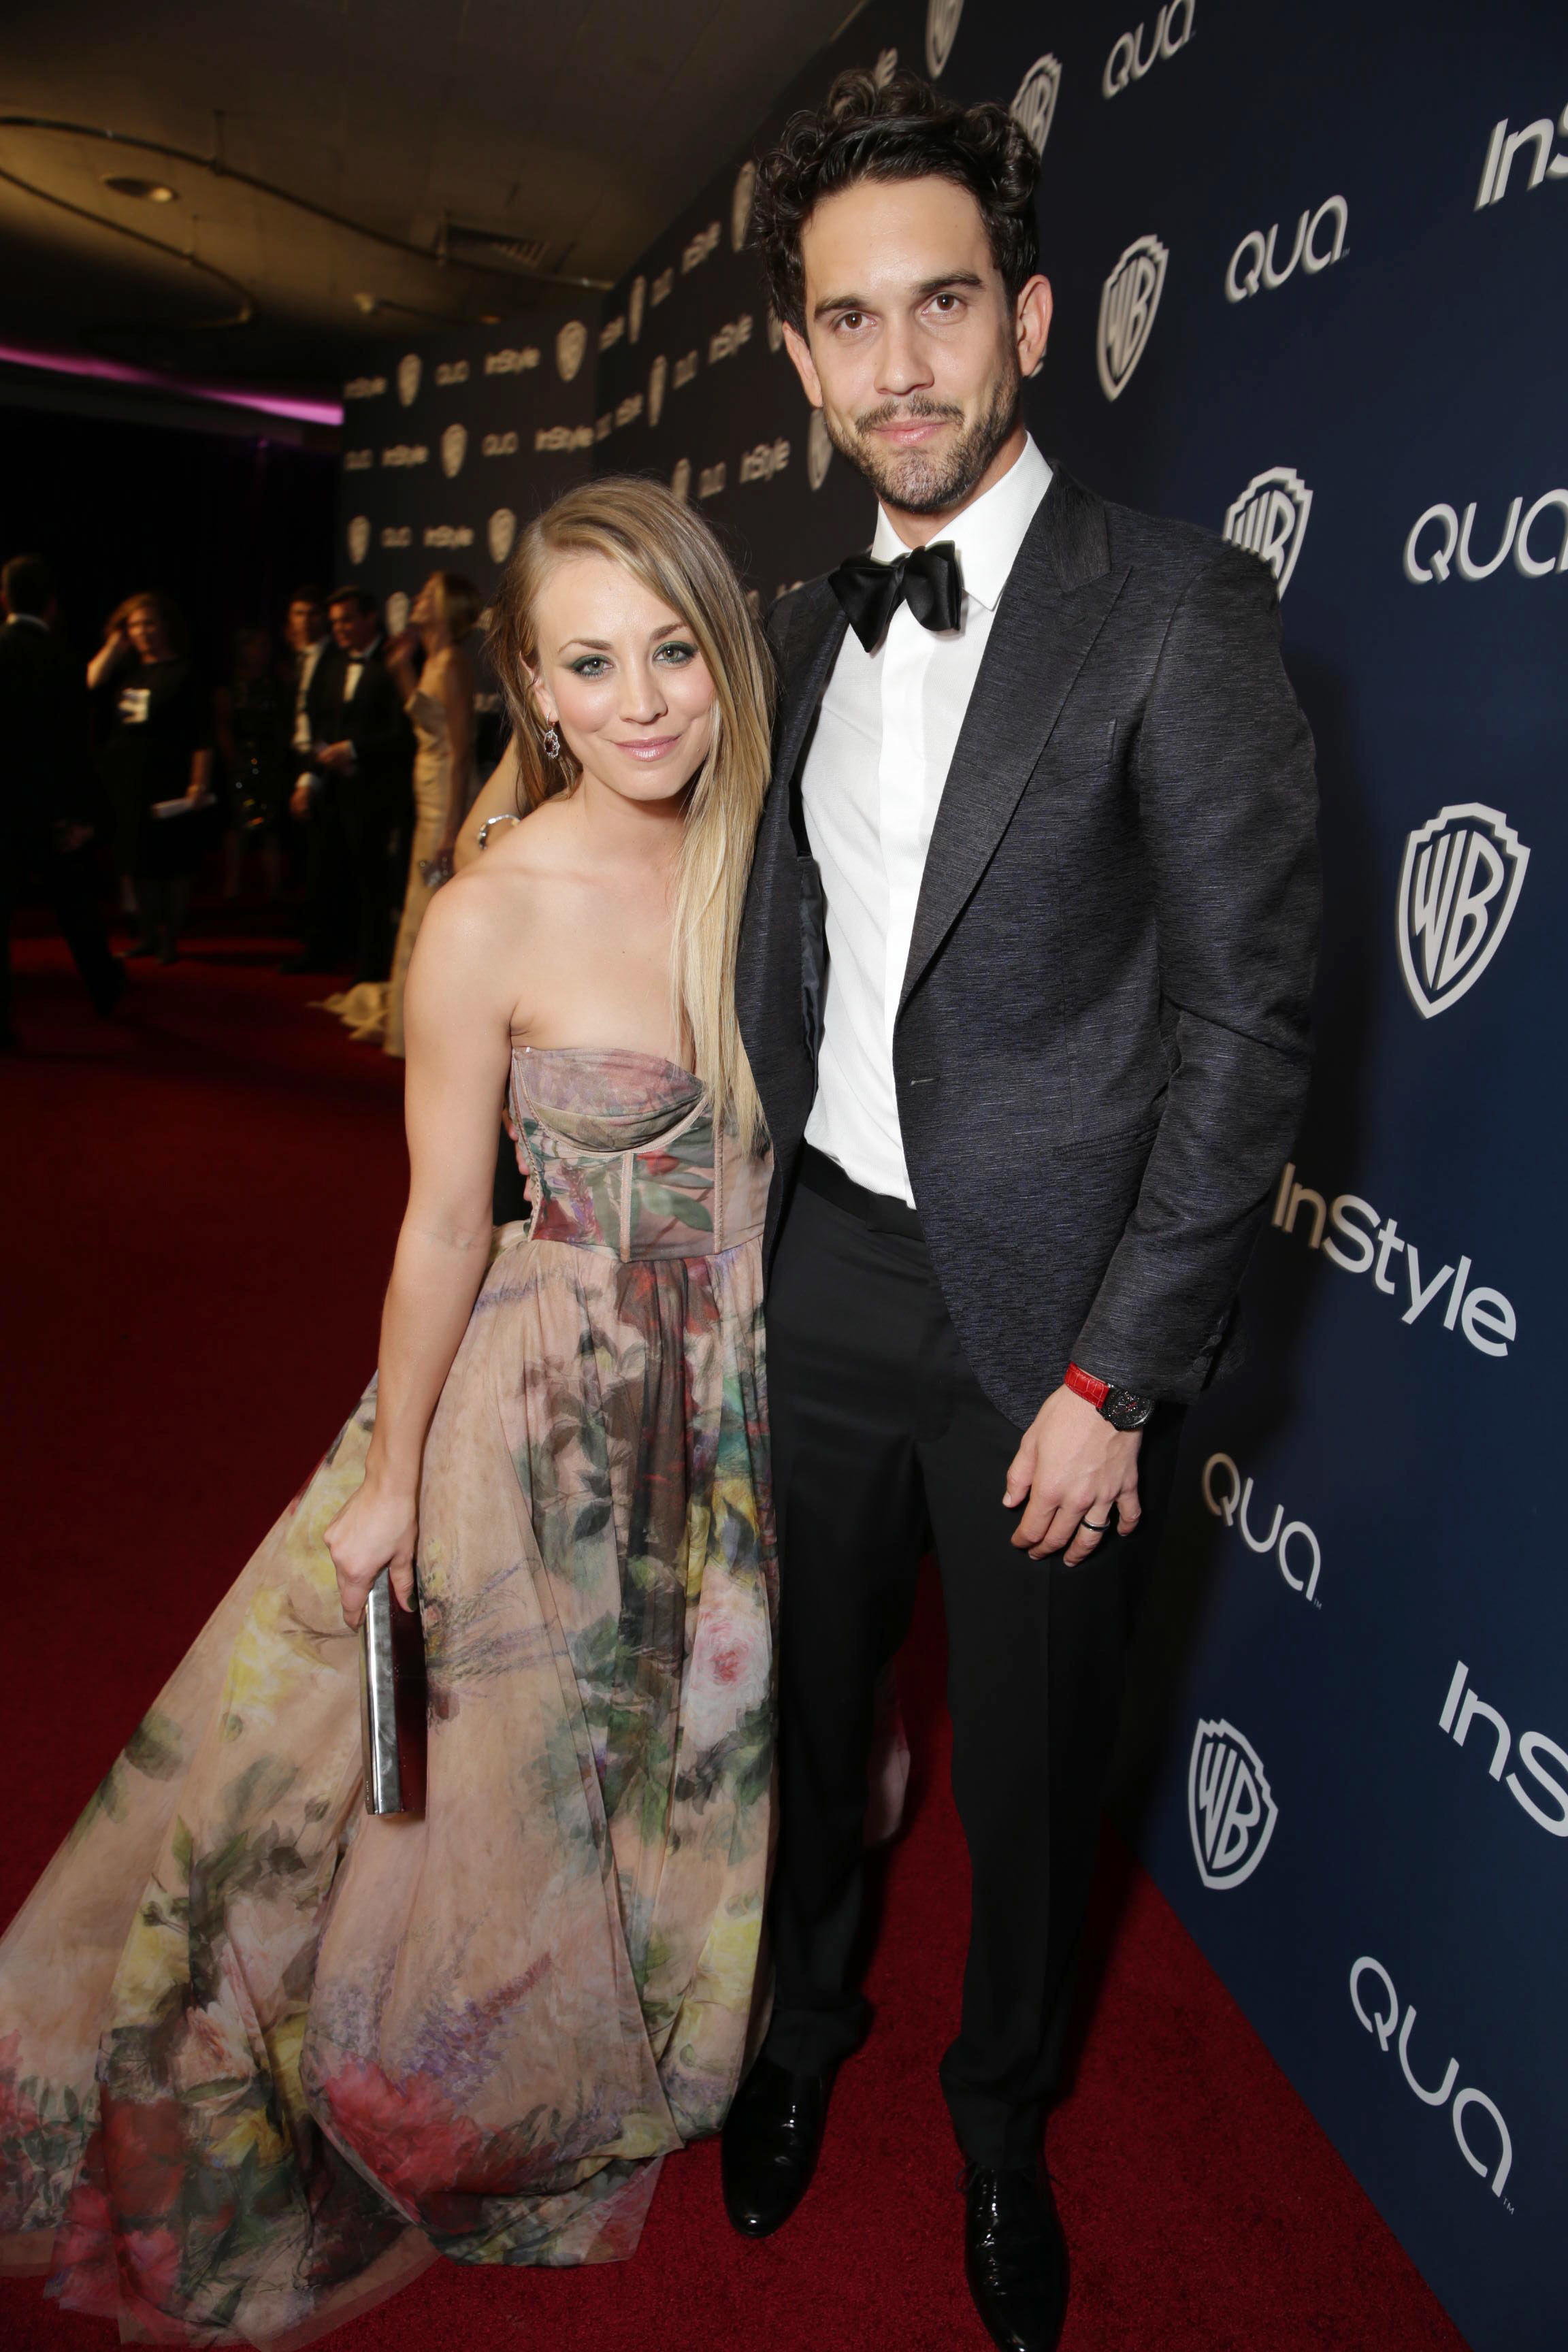 Kaley Cuoco Ryan Sweeting Globes afterparty